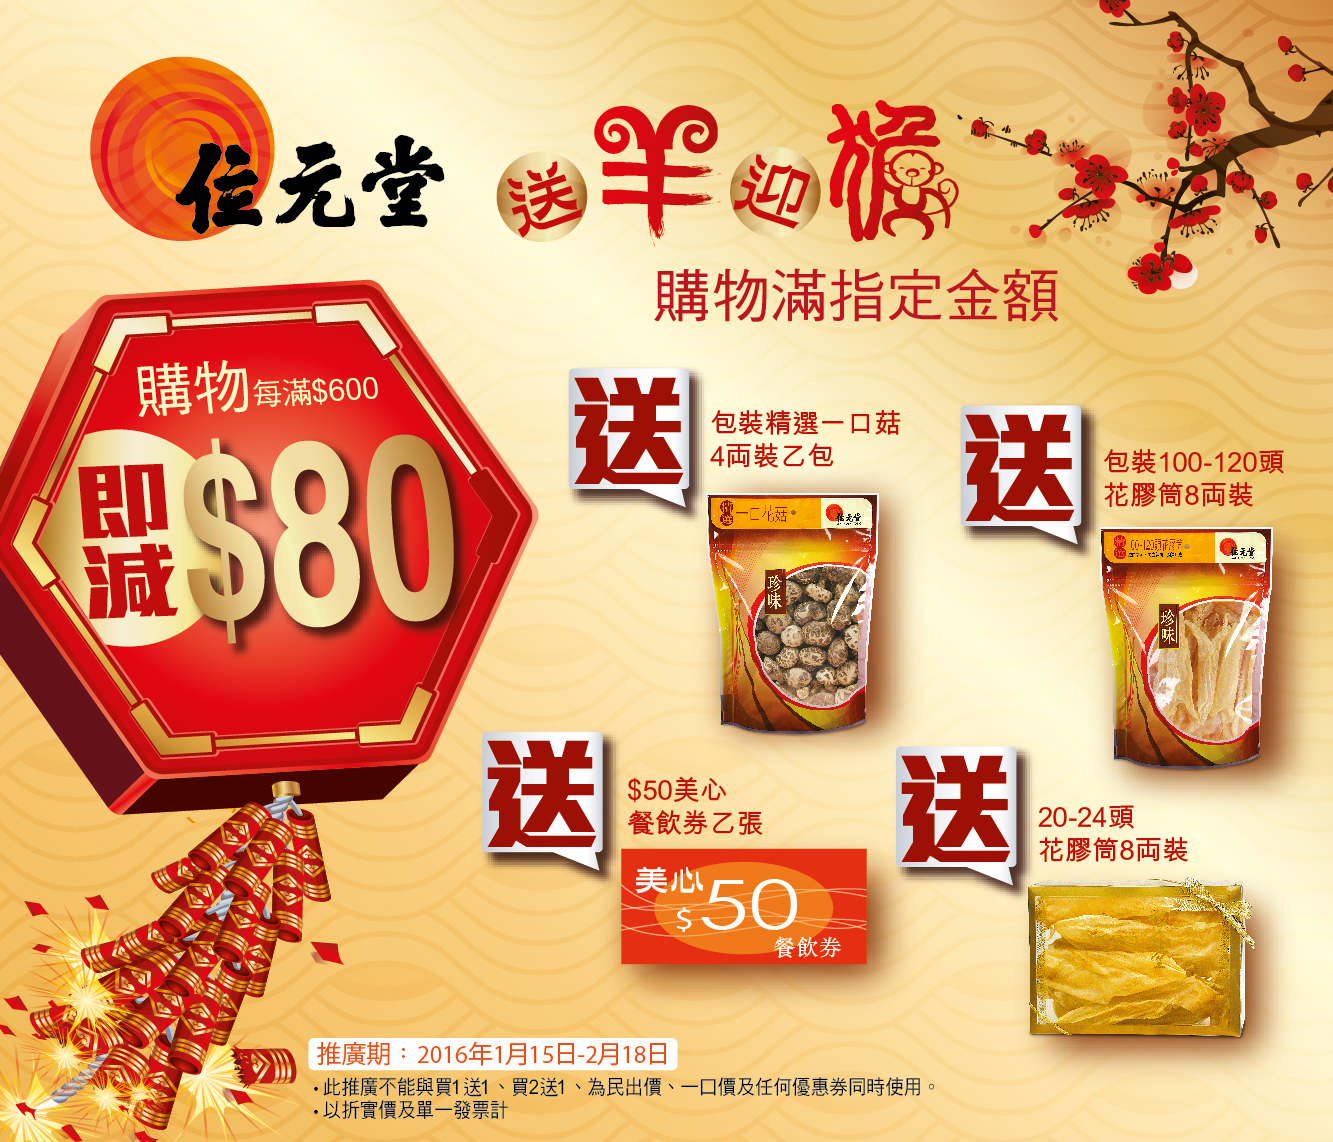 <!--:en-->Chinese New Year Promotion – Save $80 Upon Net Purchase of $600 & CNY Special Offers<!--:--><!--:cn--><<<送羊迎猴 喜气洋洋>> 购物折实满$600即减$80及多重优惠<!--:--><!--:hk--><<送羊迎猴 喜氣洋洋>> 購物折實滿$600即減$80及多重優惠<!--:-->